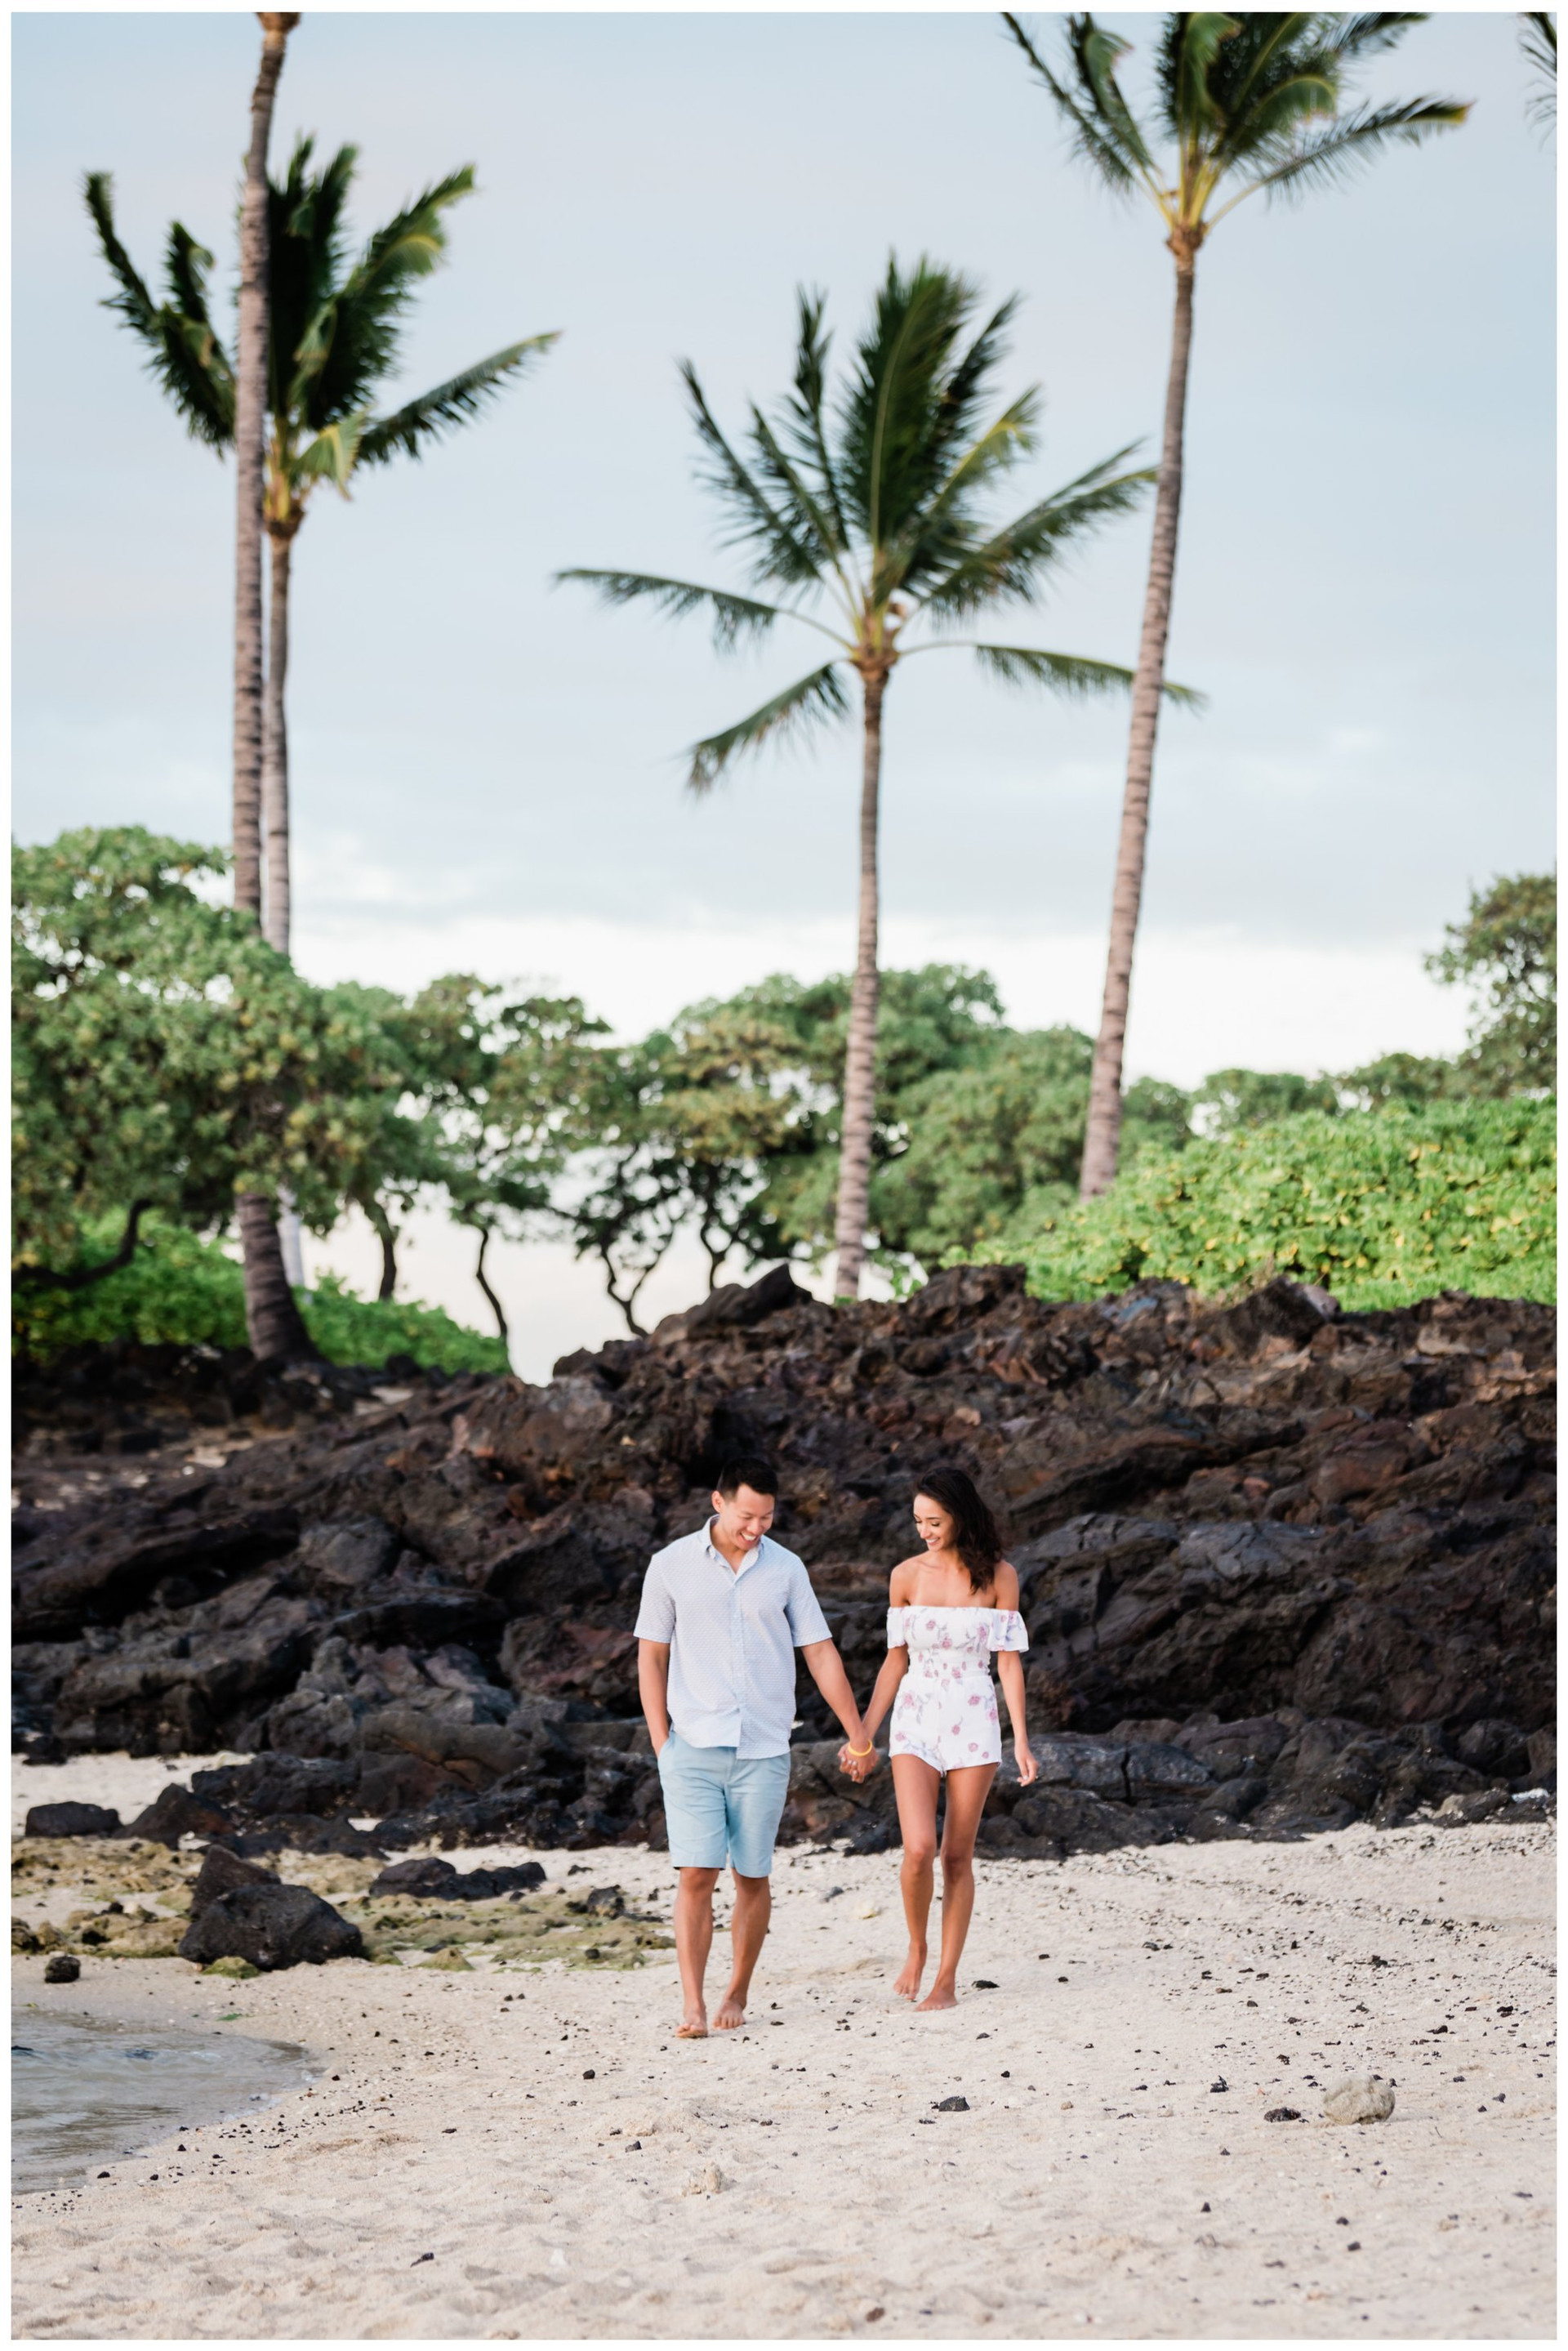 Hawaii Engagment Photographer 10.jpg